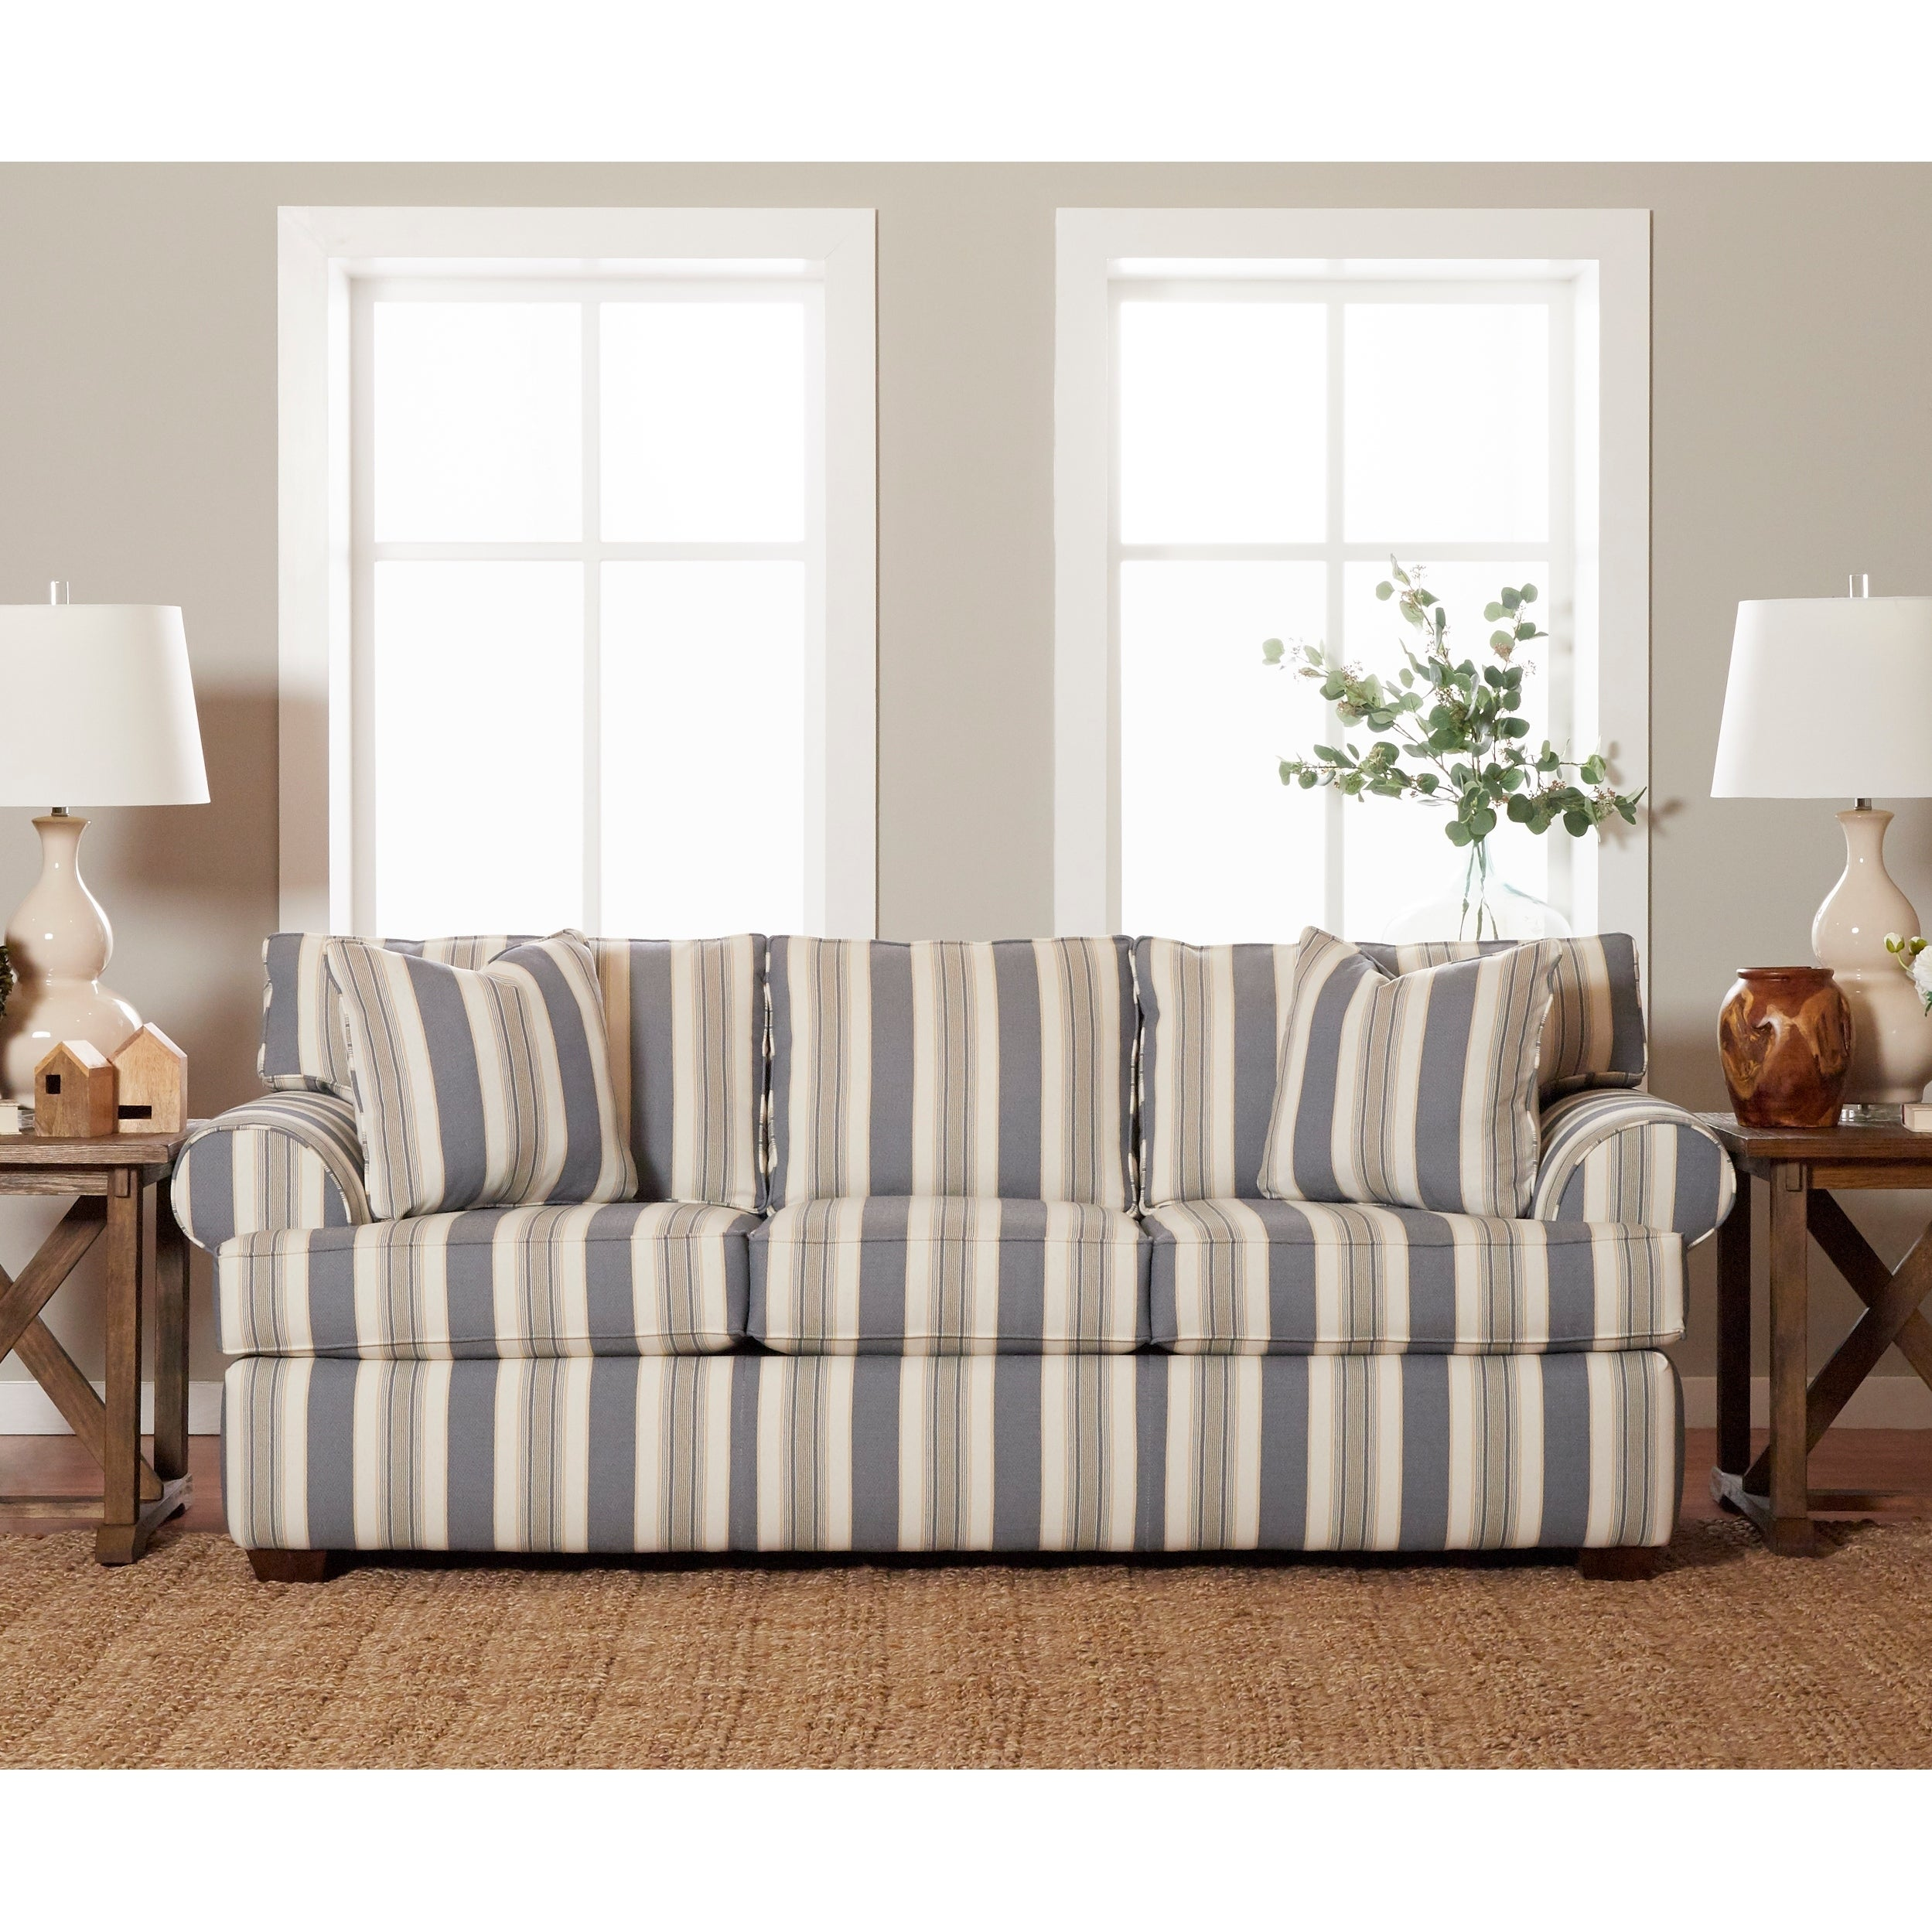 Shop Made To Order Lady Sofa By Klaussner Furniture On Sale Free